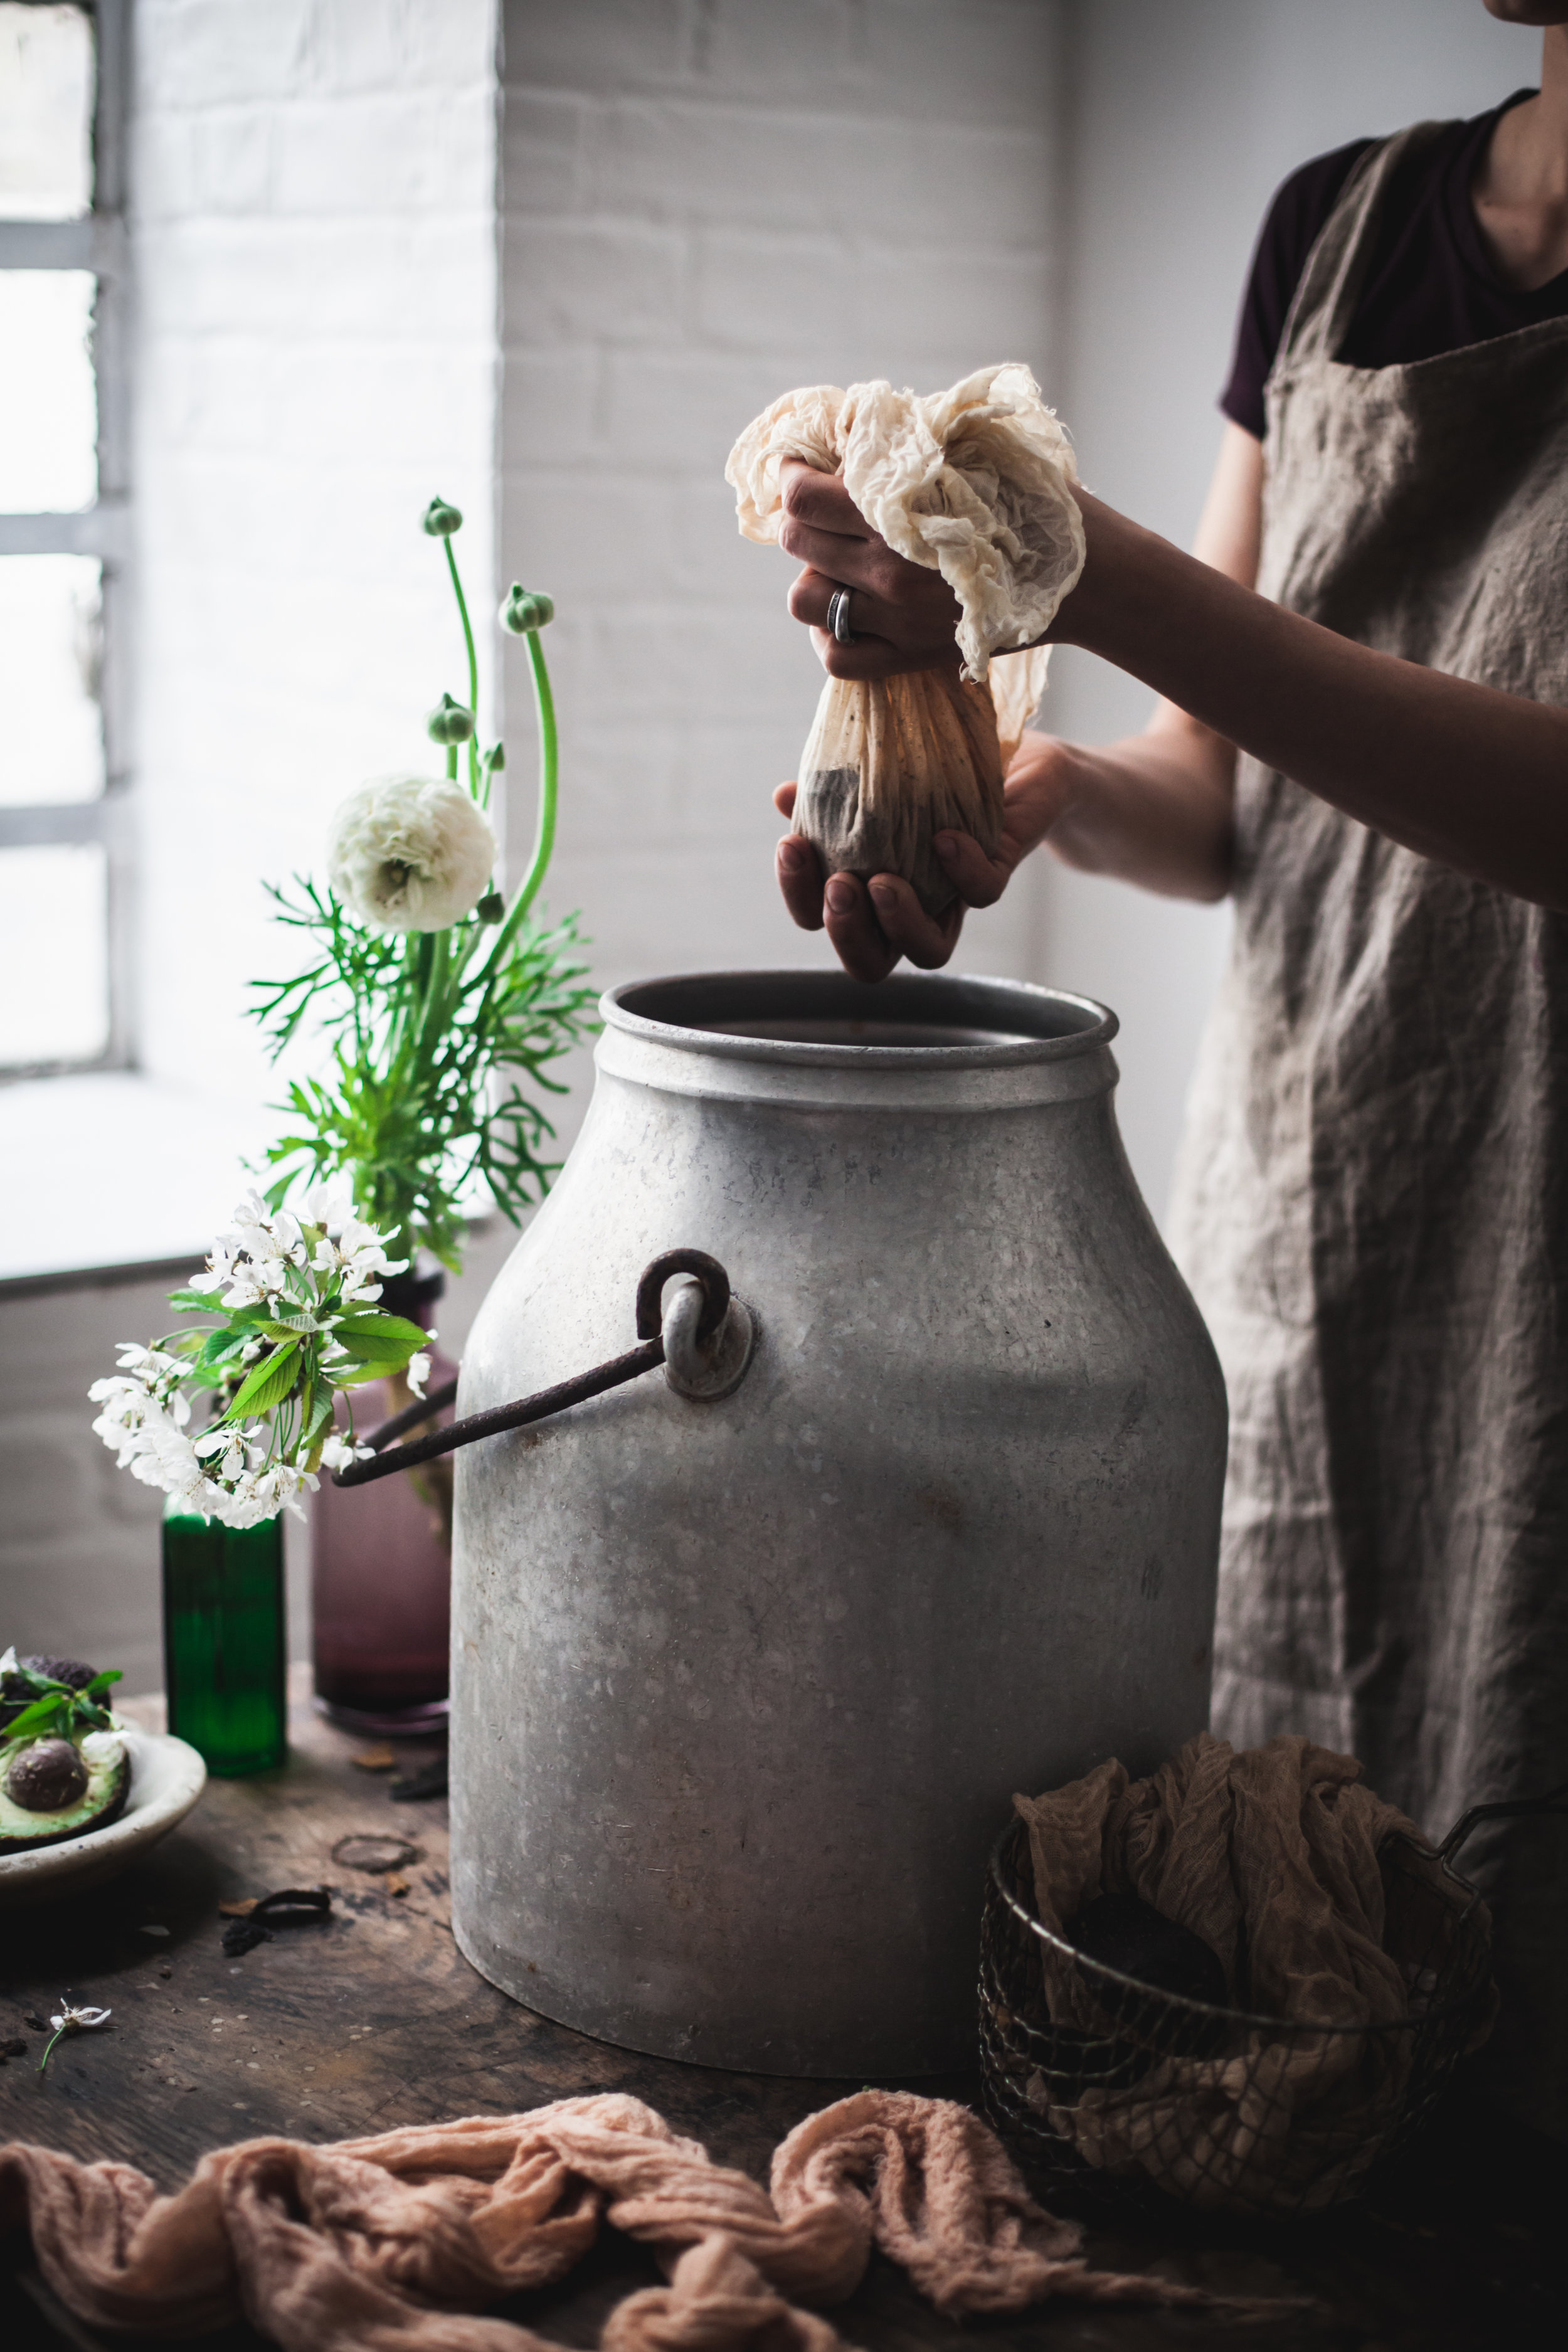 natural dyeing and food styling workshop - with twiggstudos and twomeSOLD OUT